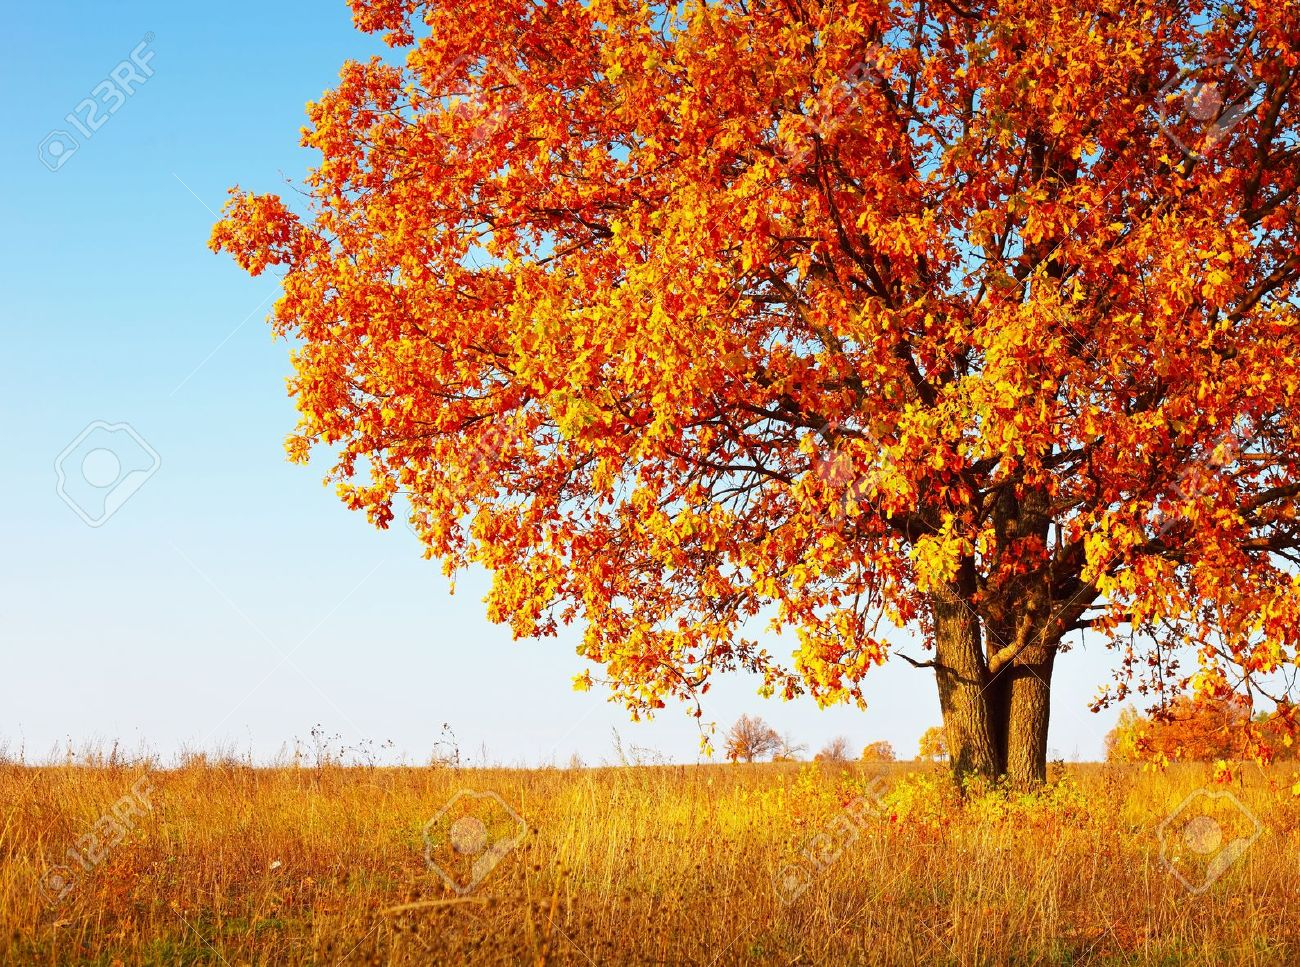 Big autumn oak tree with red leaves on a blue sky background - 11149819